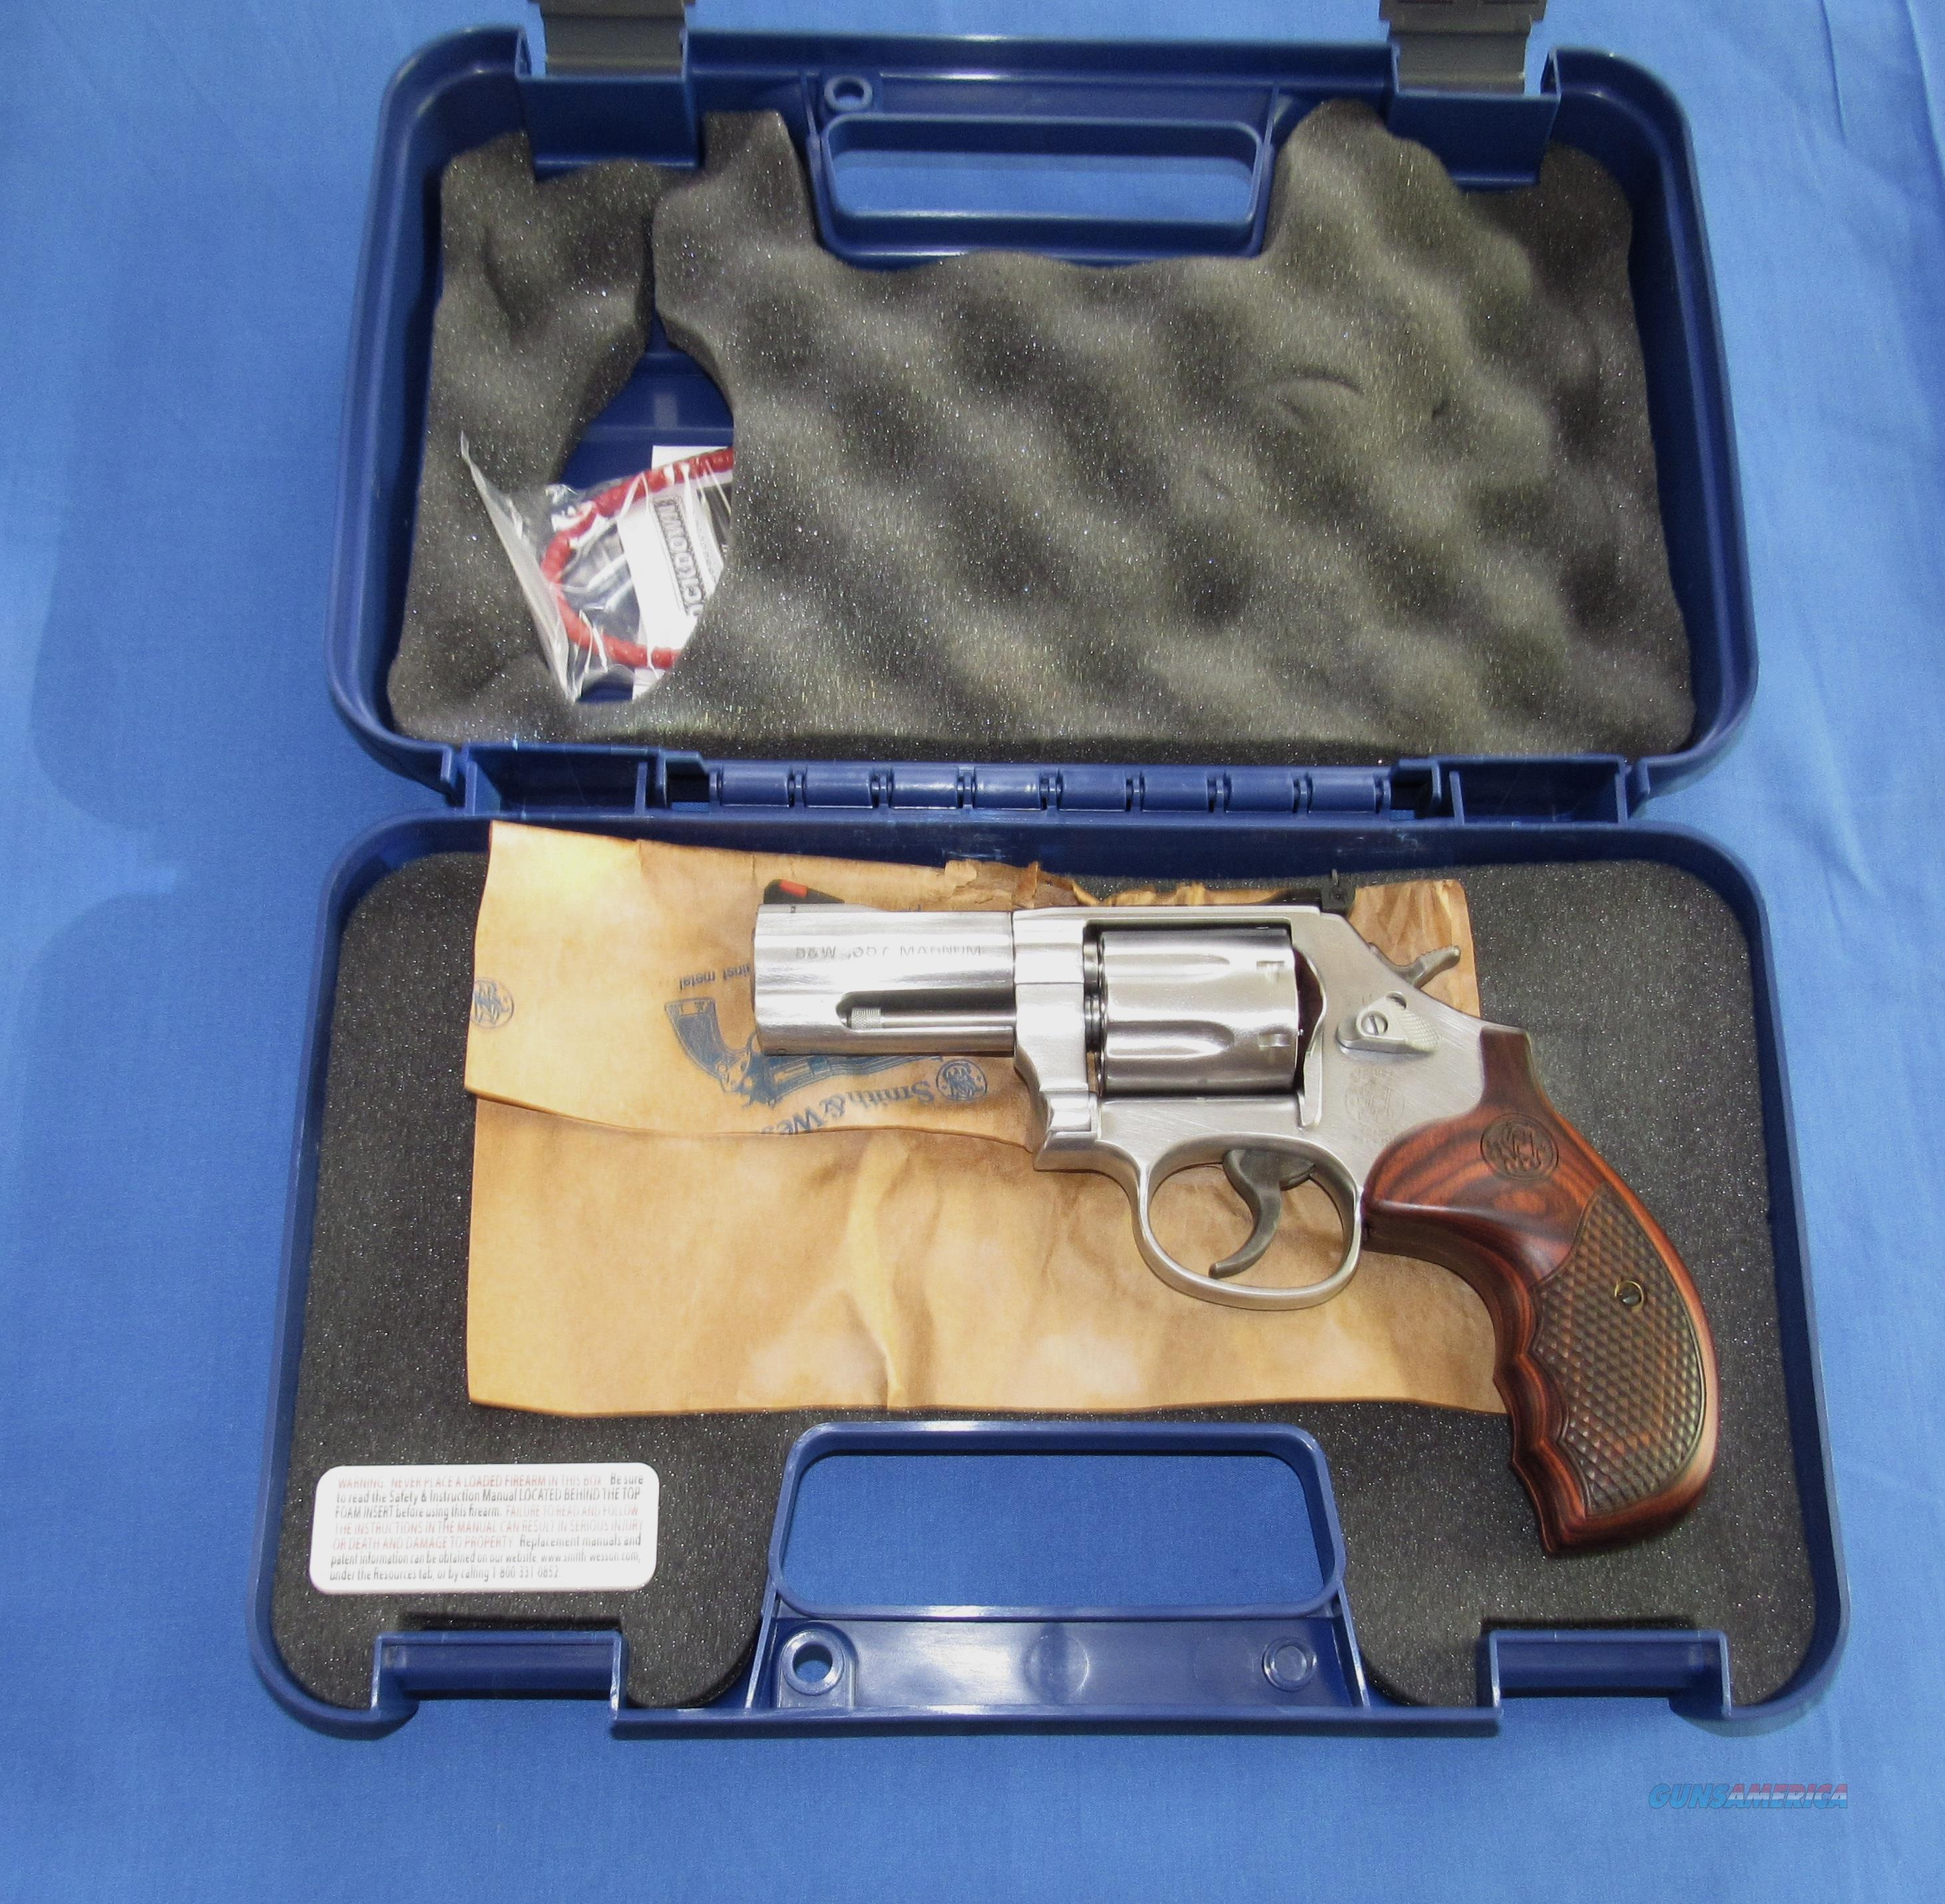 SMITH & WESSON 686 PLUS DELUXE 357 MAGNUM REVOLVER  Guns > Pistols > Smith & Wesson Revolvers > Med. Frame ( K/L )